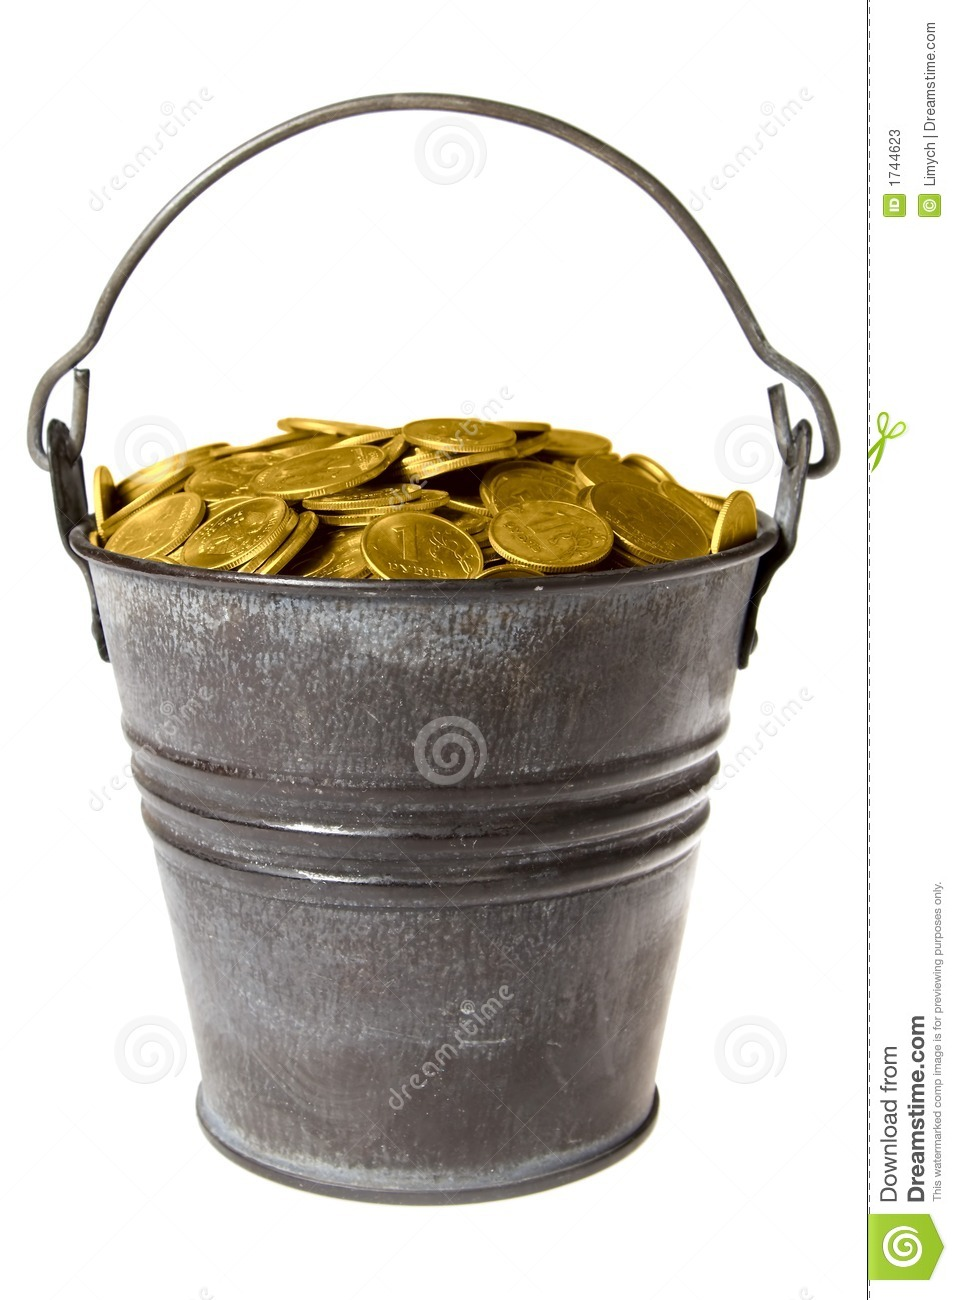 Full Bucket Of Golden Coins Stock Photos - Image: 1744623